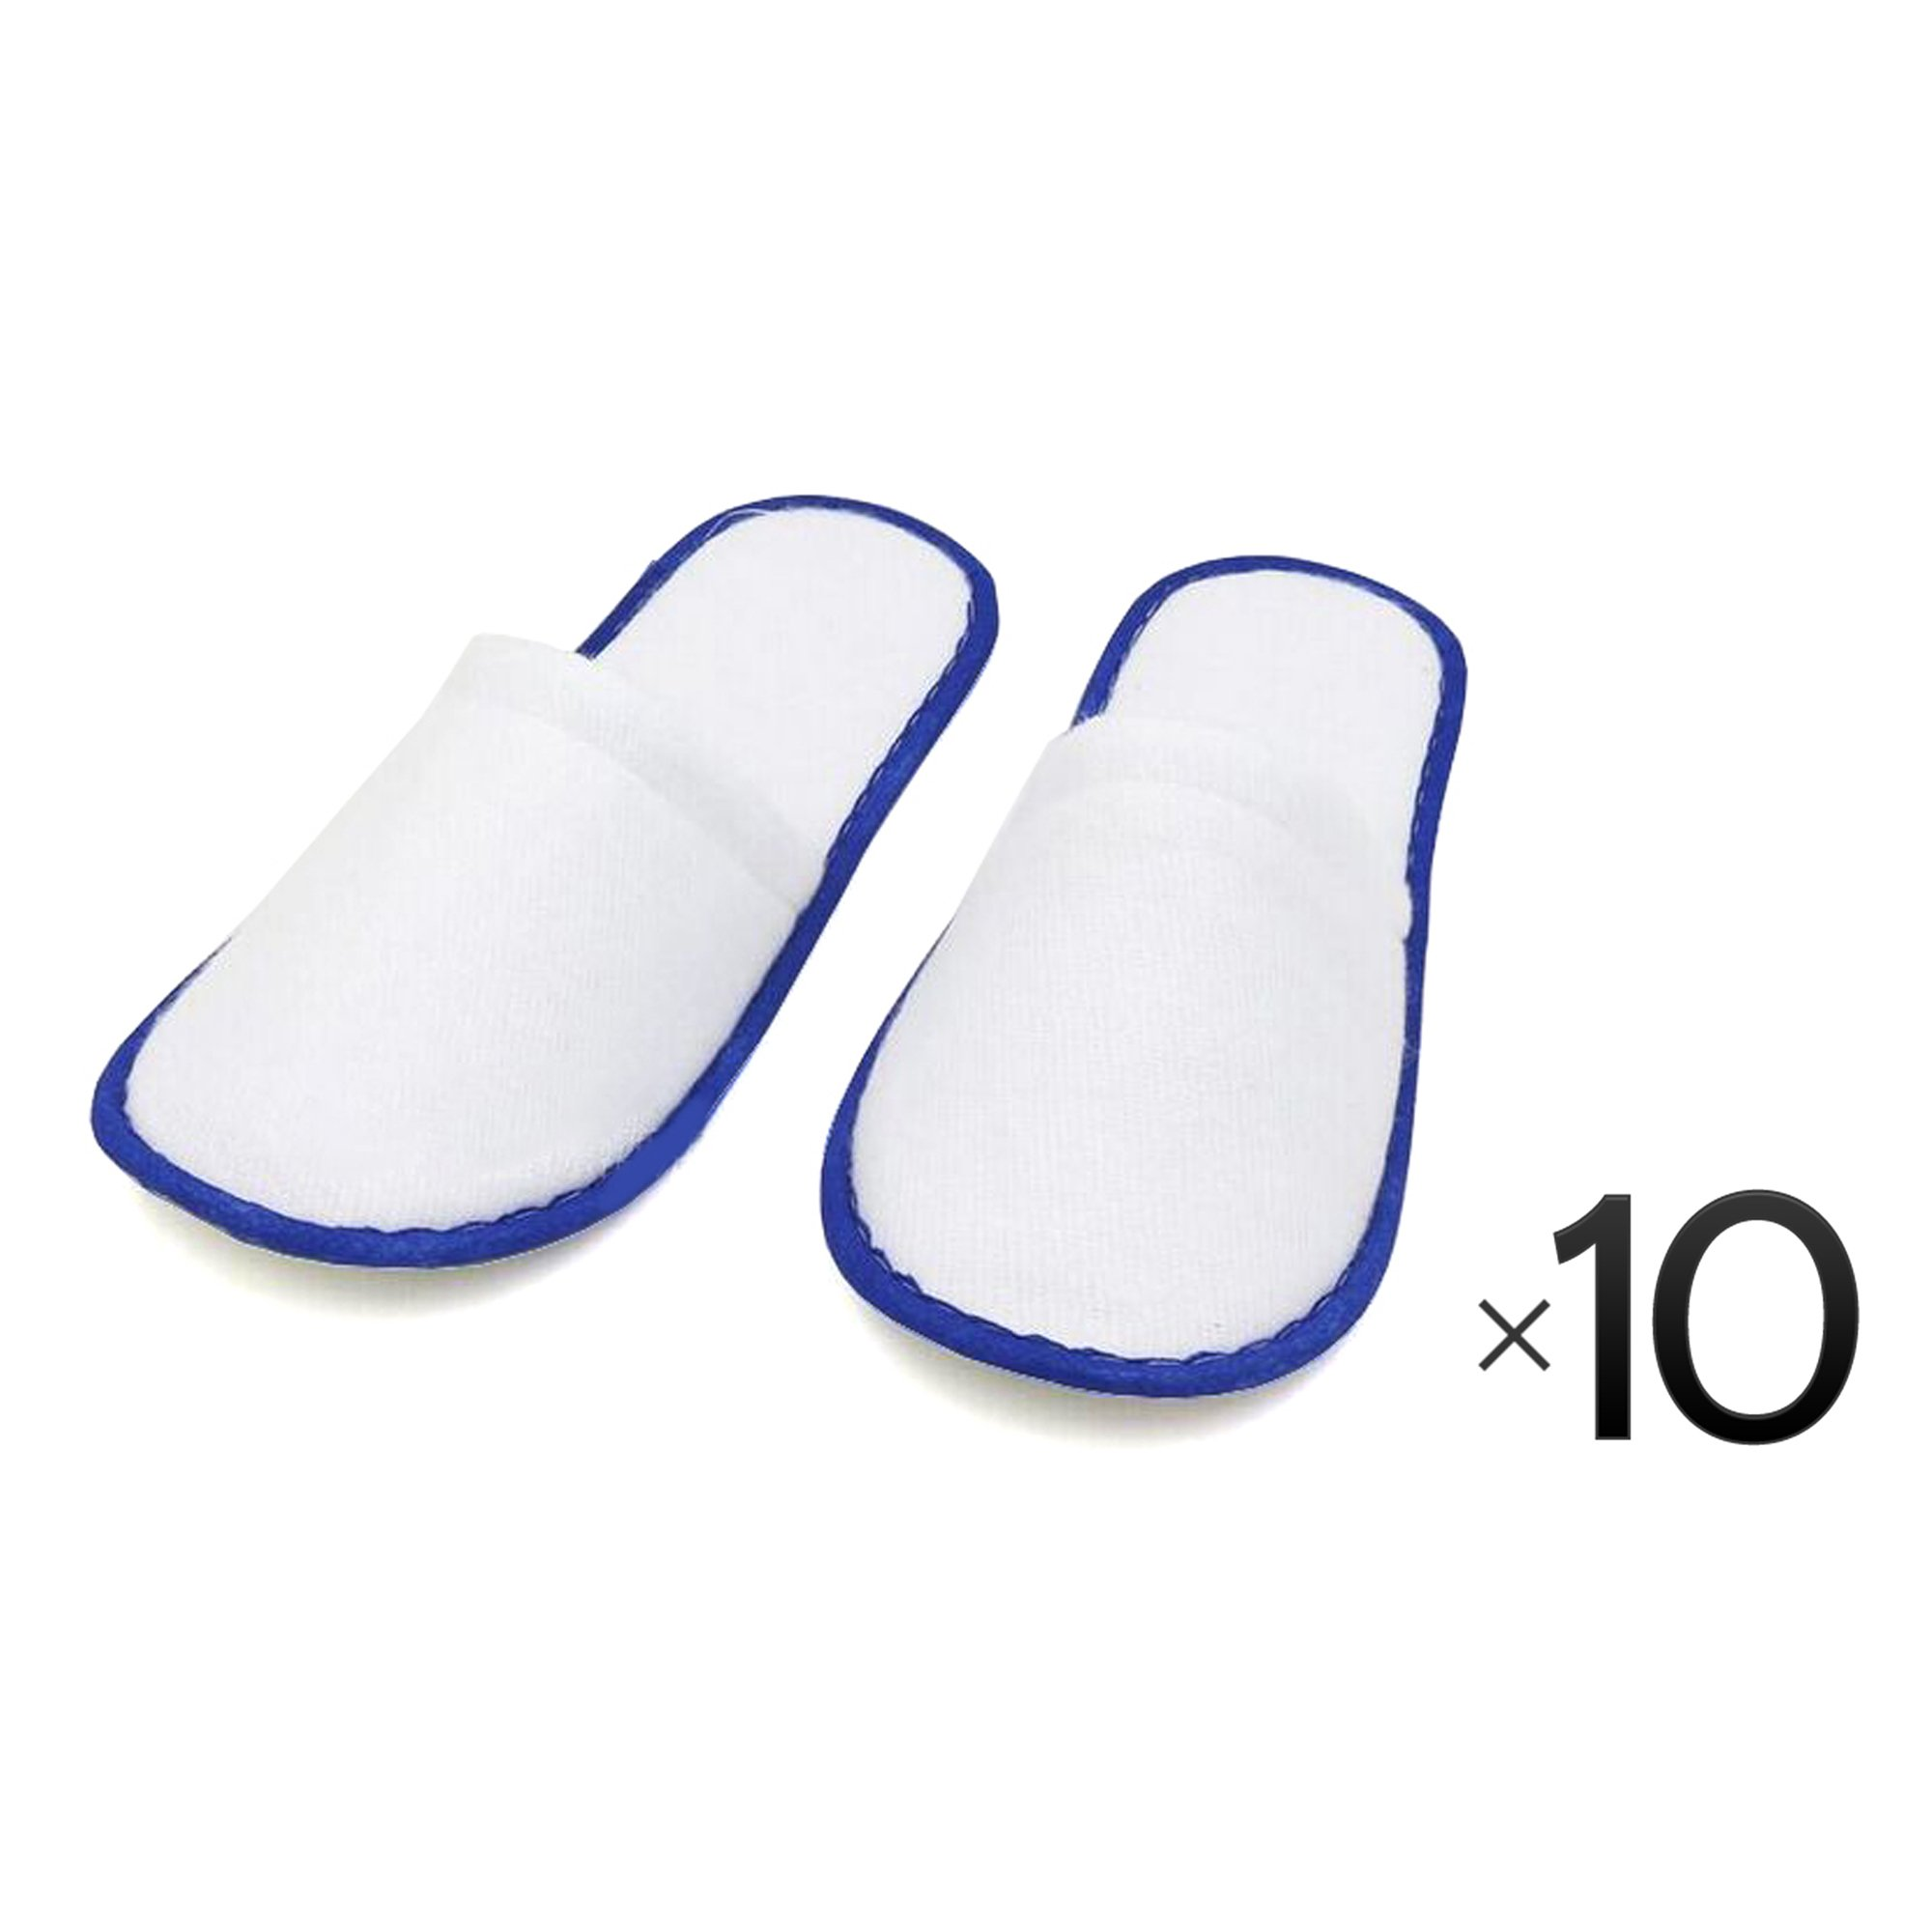 Disposable Cotton Slipper Slippers Salon Spa Hotel Pedicure Closed Toes 10 Pairs - Blue